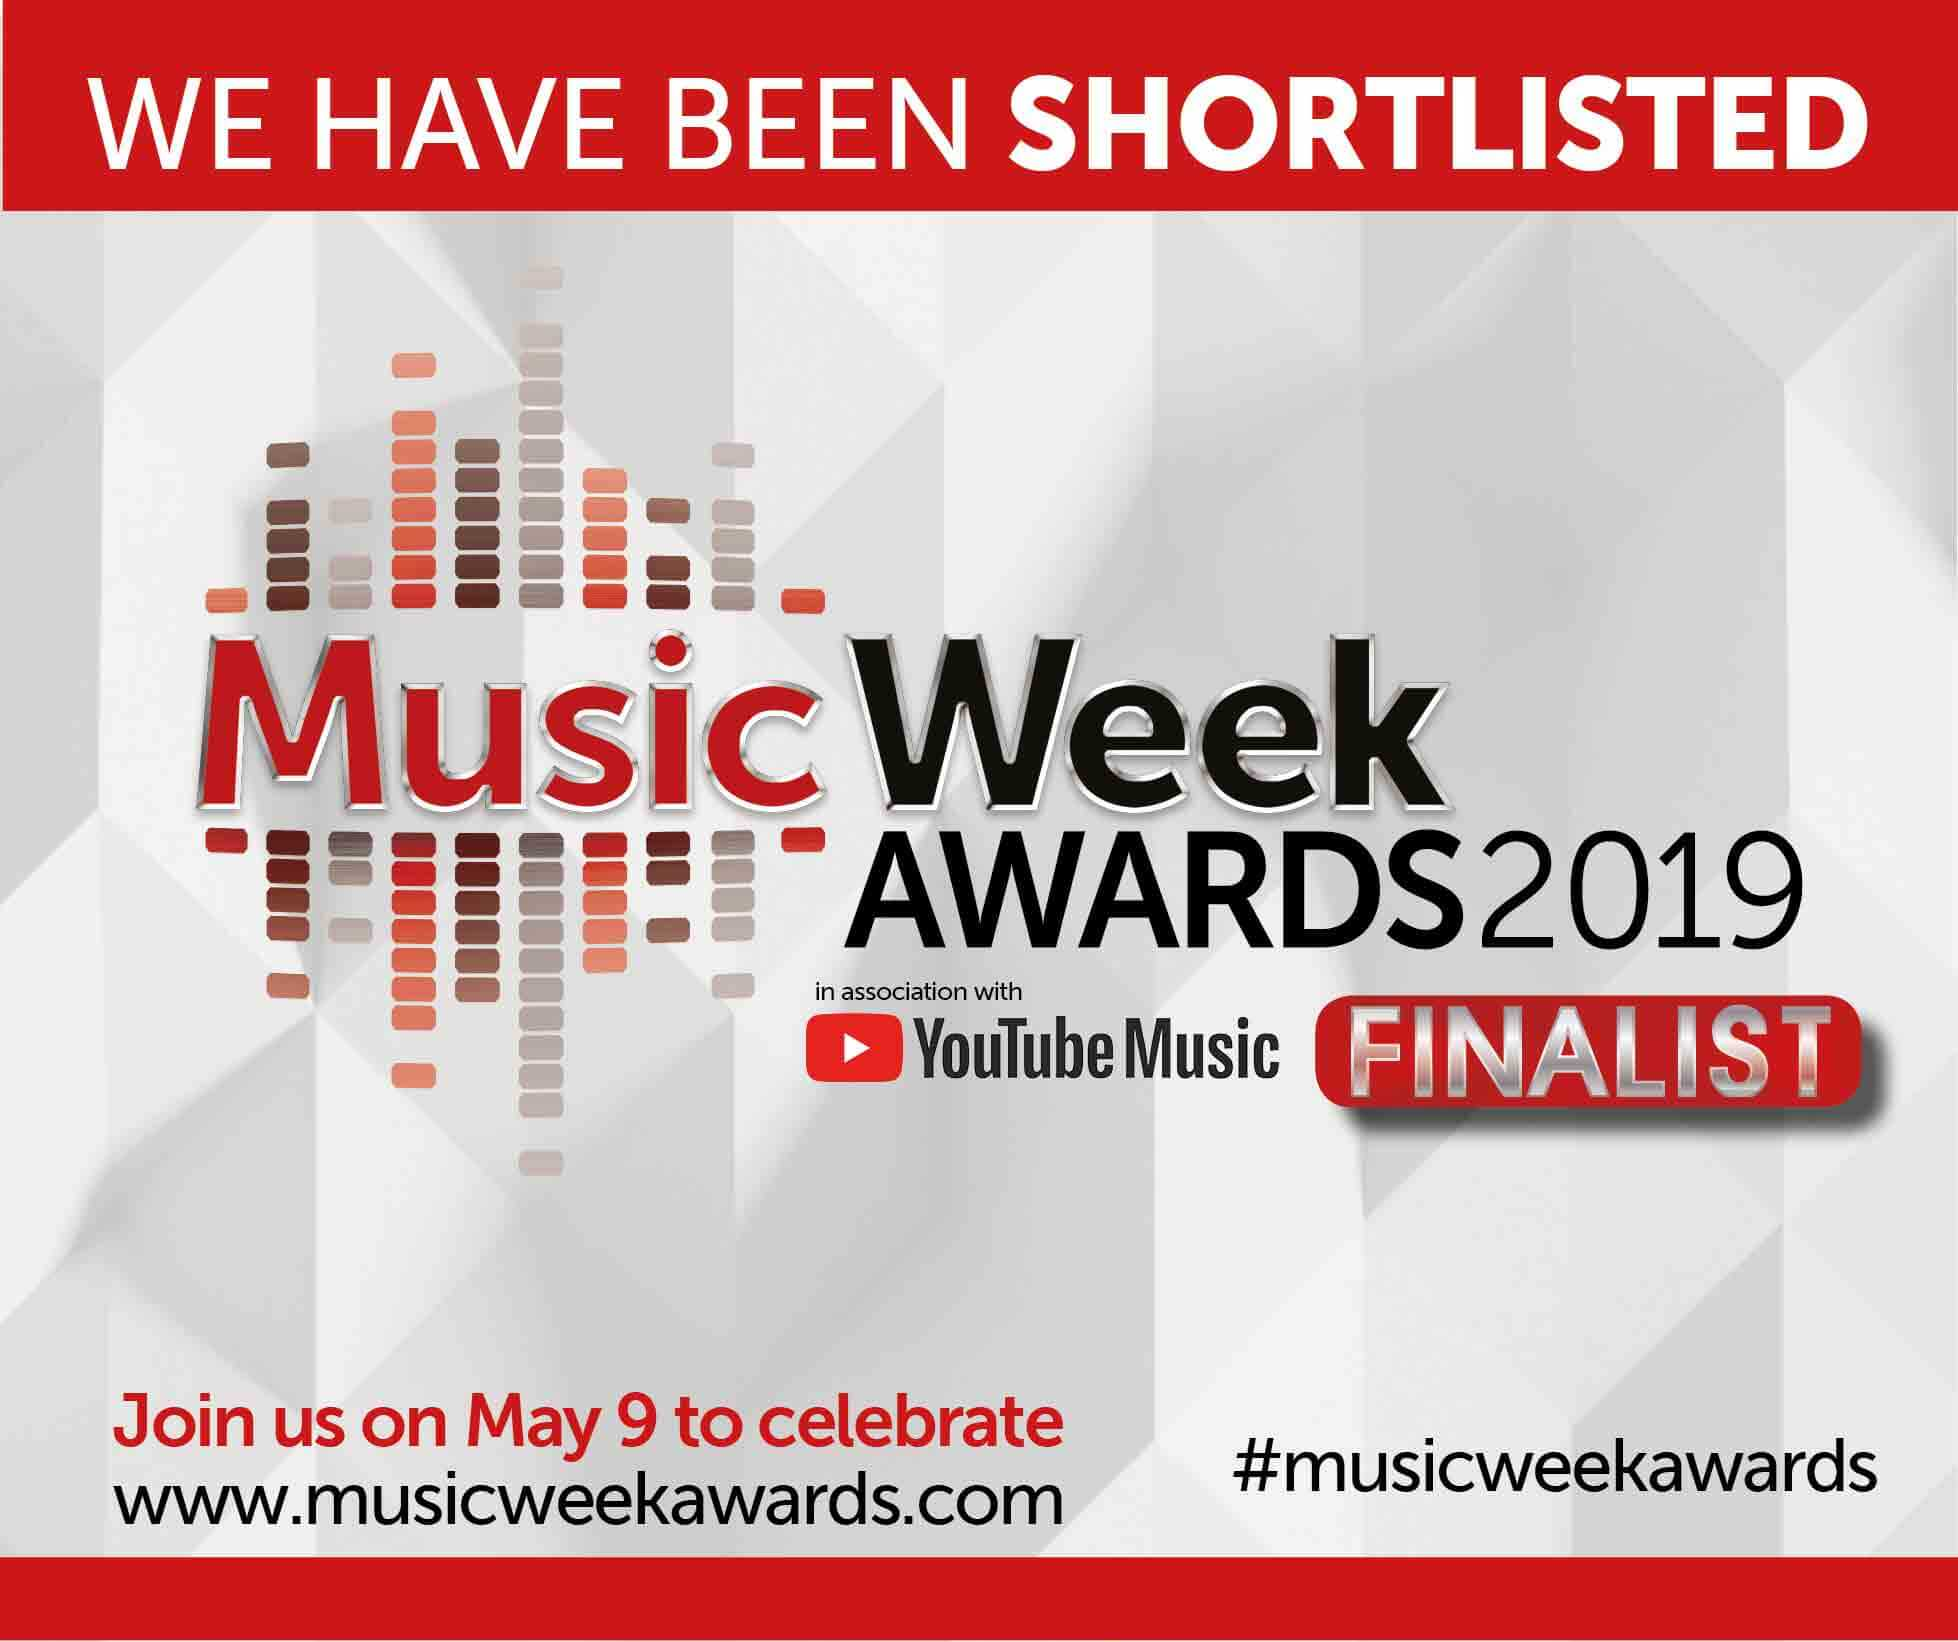 Hamlins shortlisted for Law Firm Of The Year at the Music Week Awards 2019